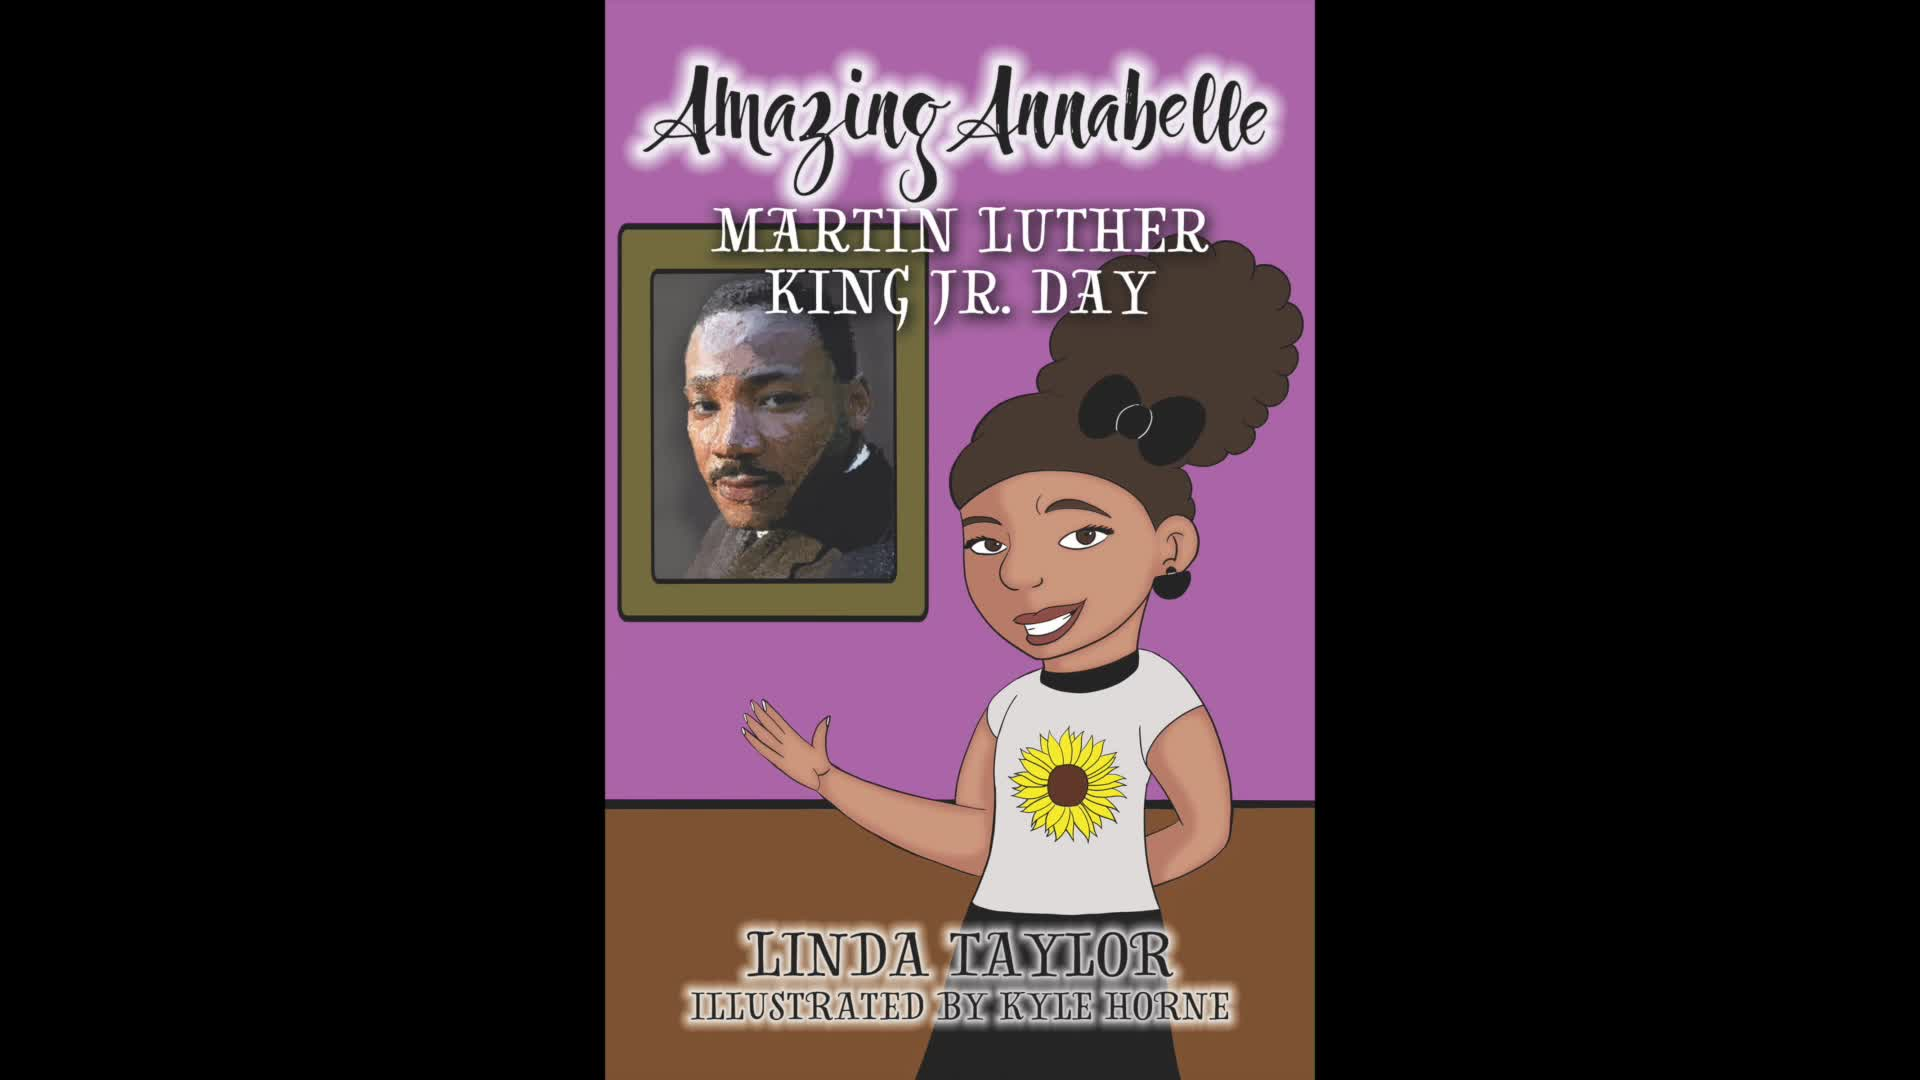 Amazing Annabelle Martin Luther King Jr Day Chapter 5